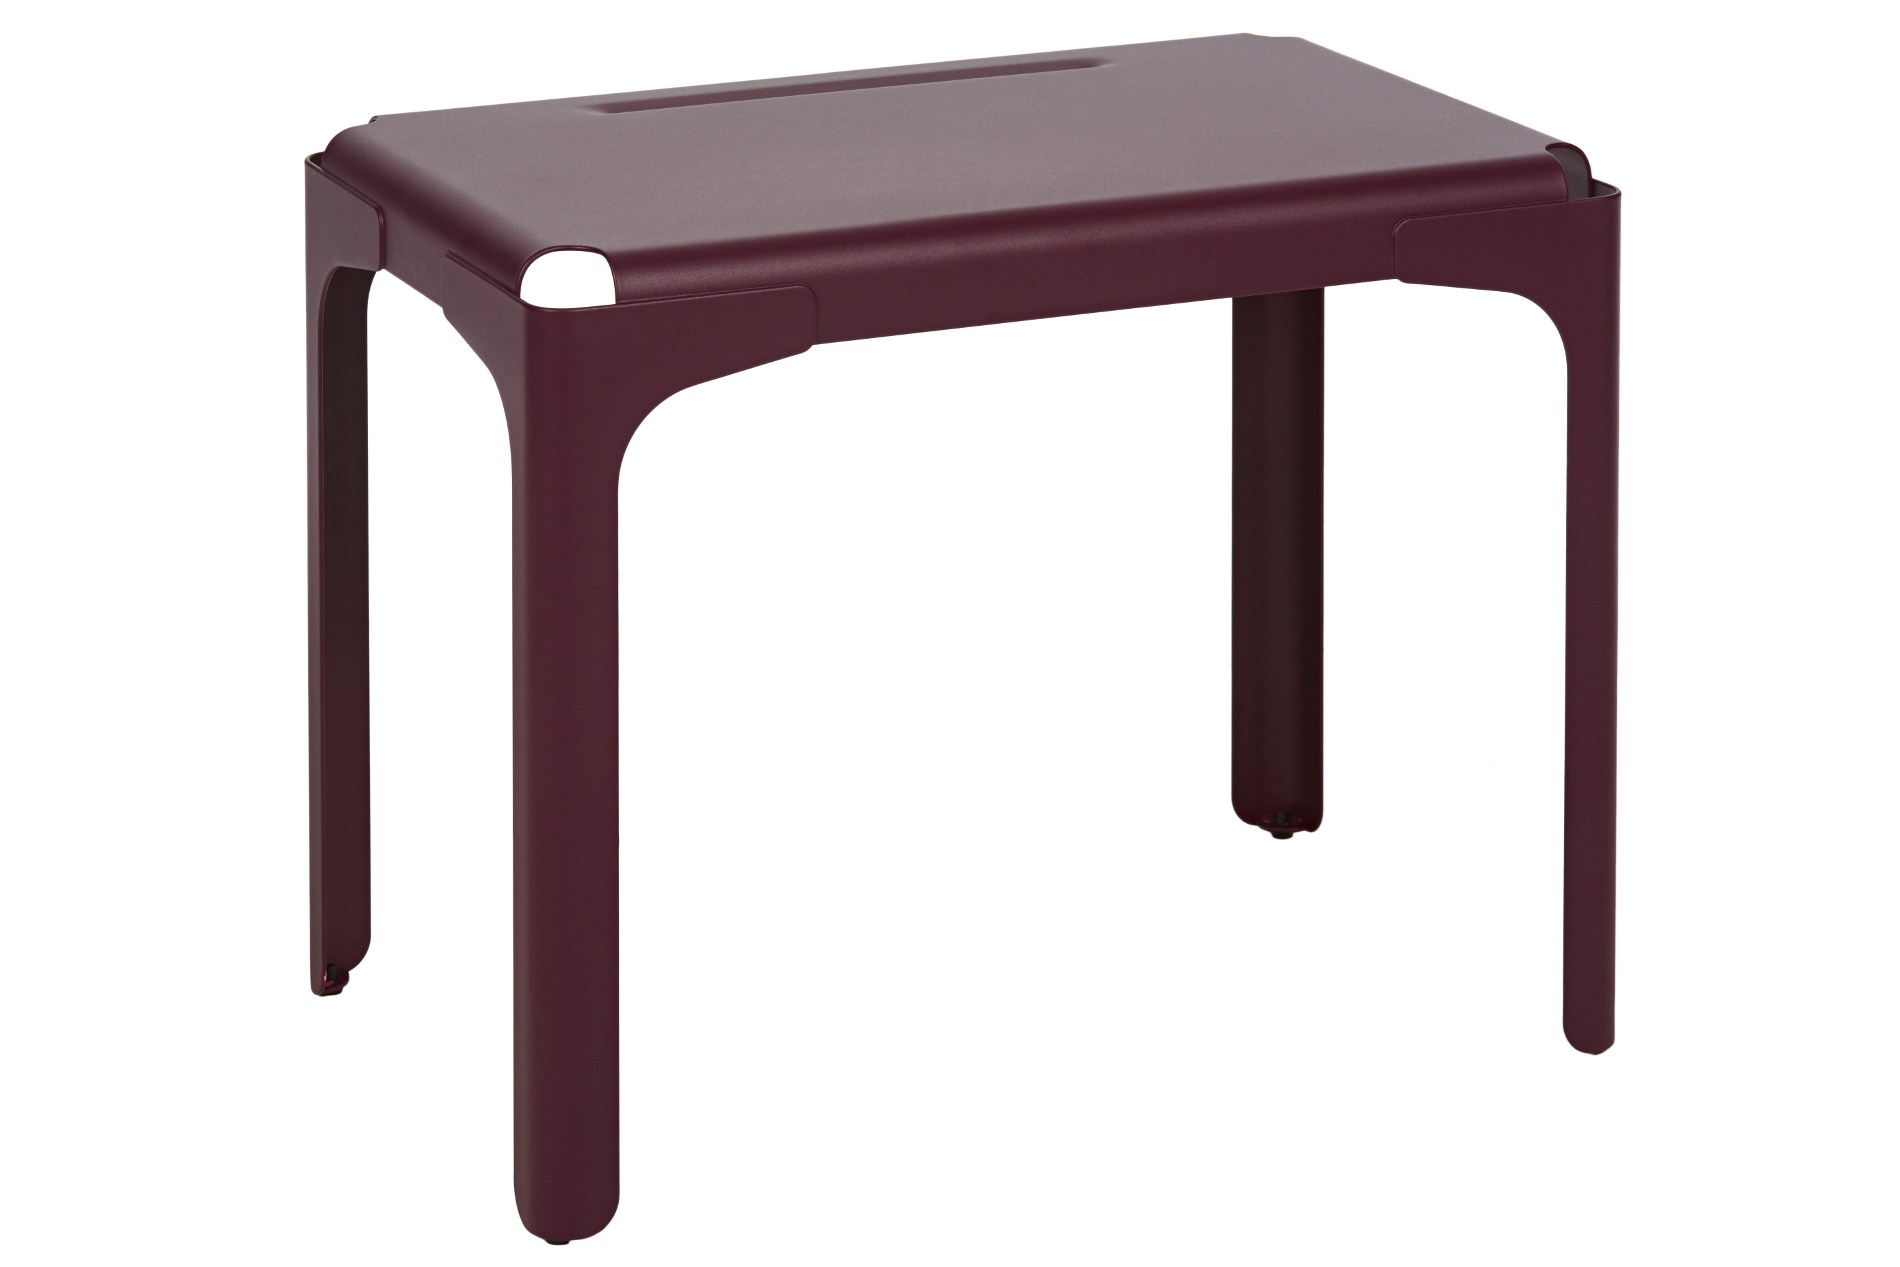 metal writing desk Sturdy, powder-coated steel frame construction and leveling feet ensure stability enhances any environment and maximizes under-desk space features two drawers for.